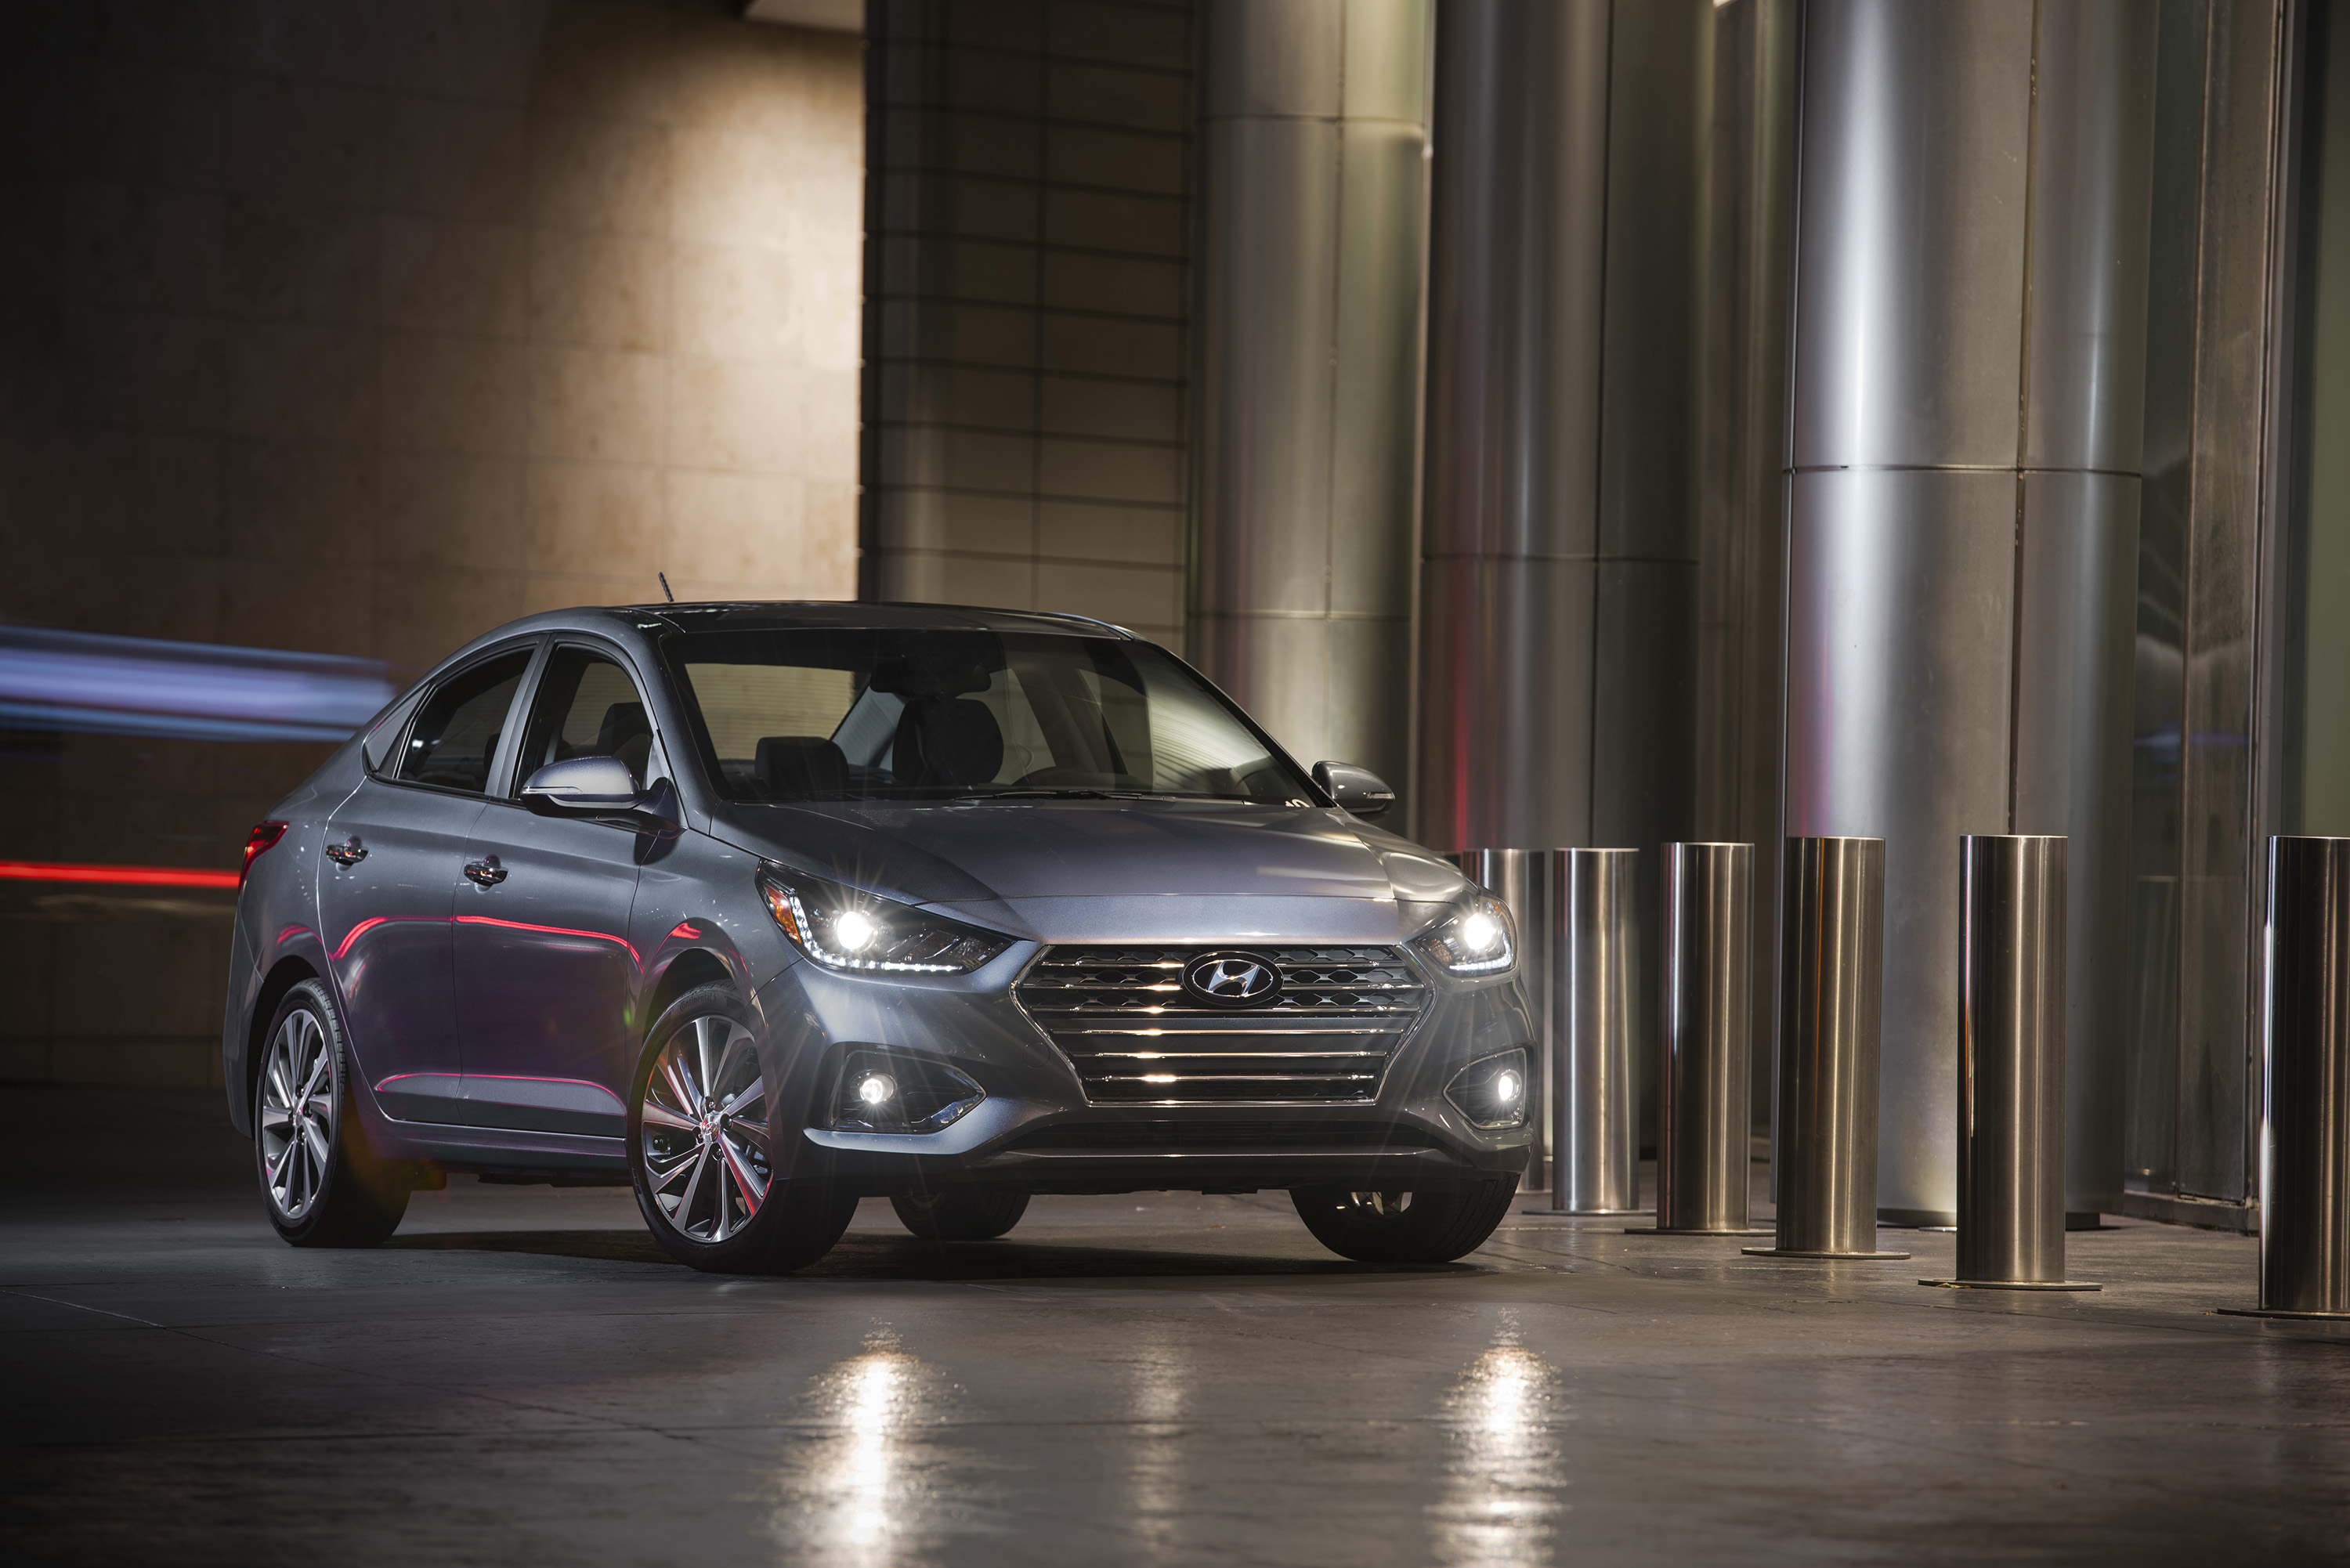 2018 Hyundai Accent starts at $14,995